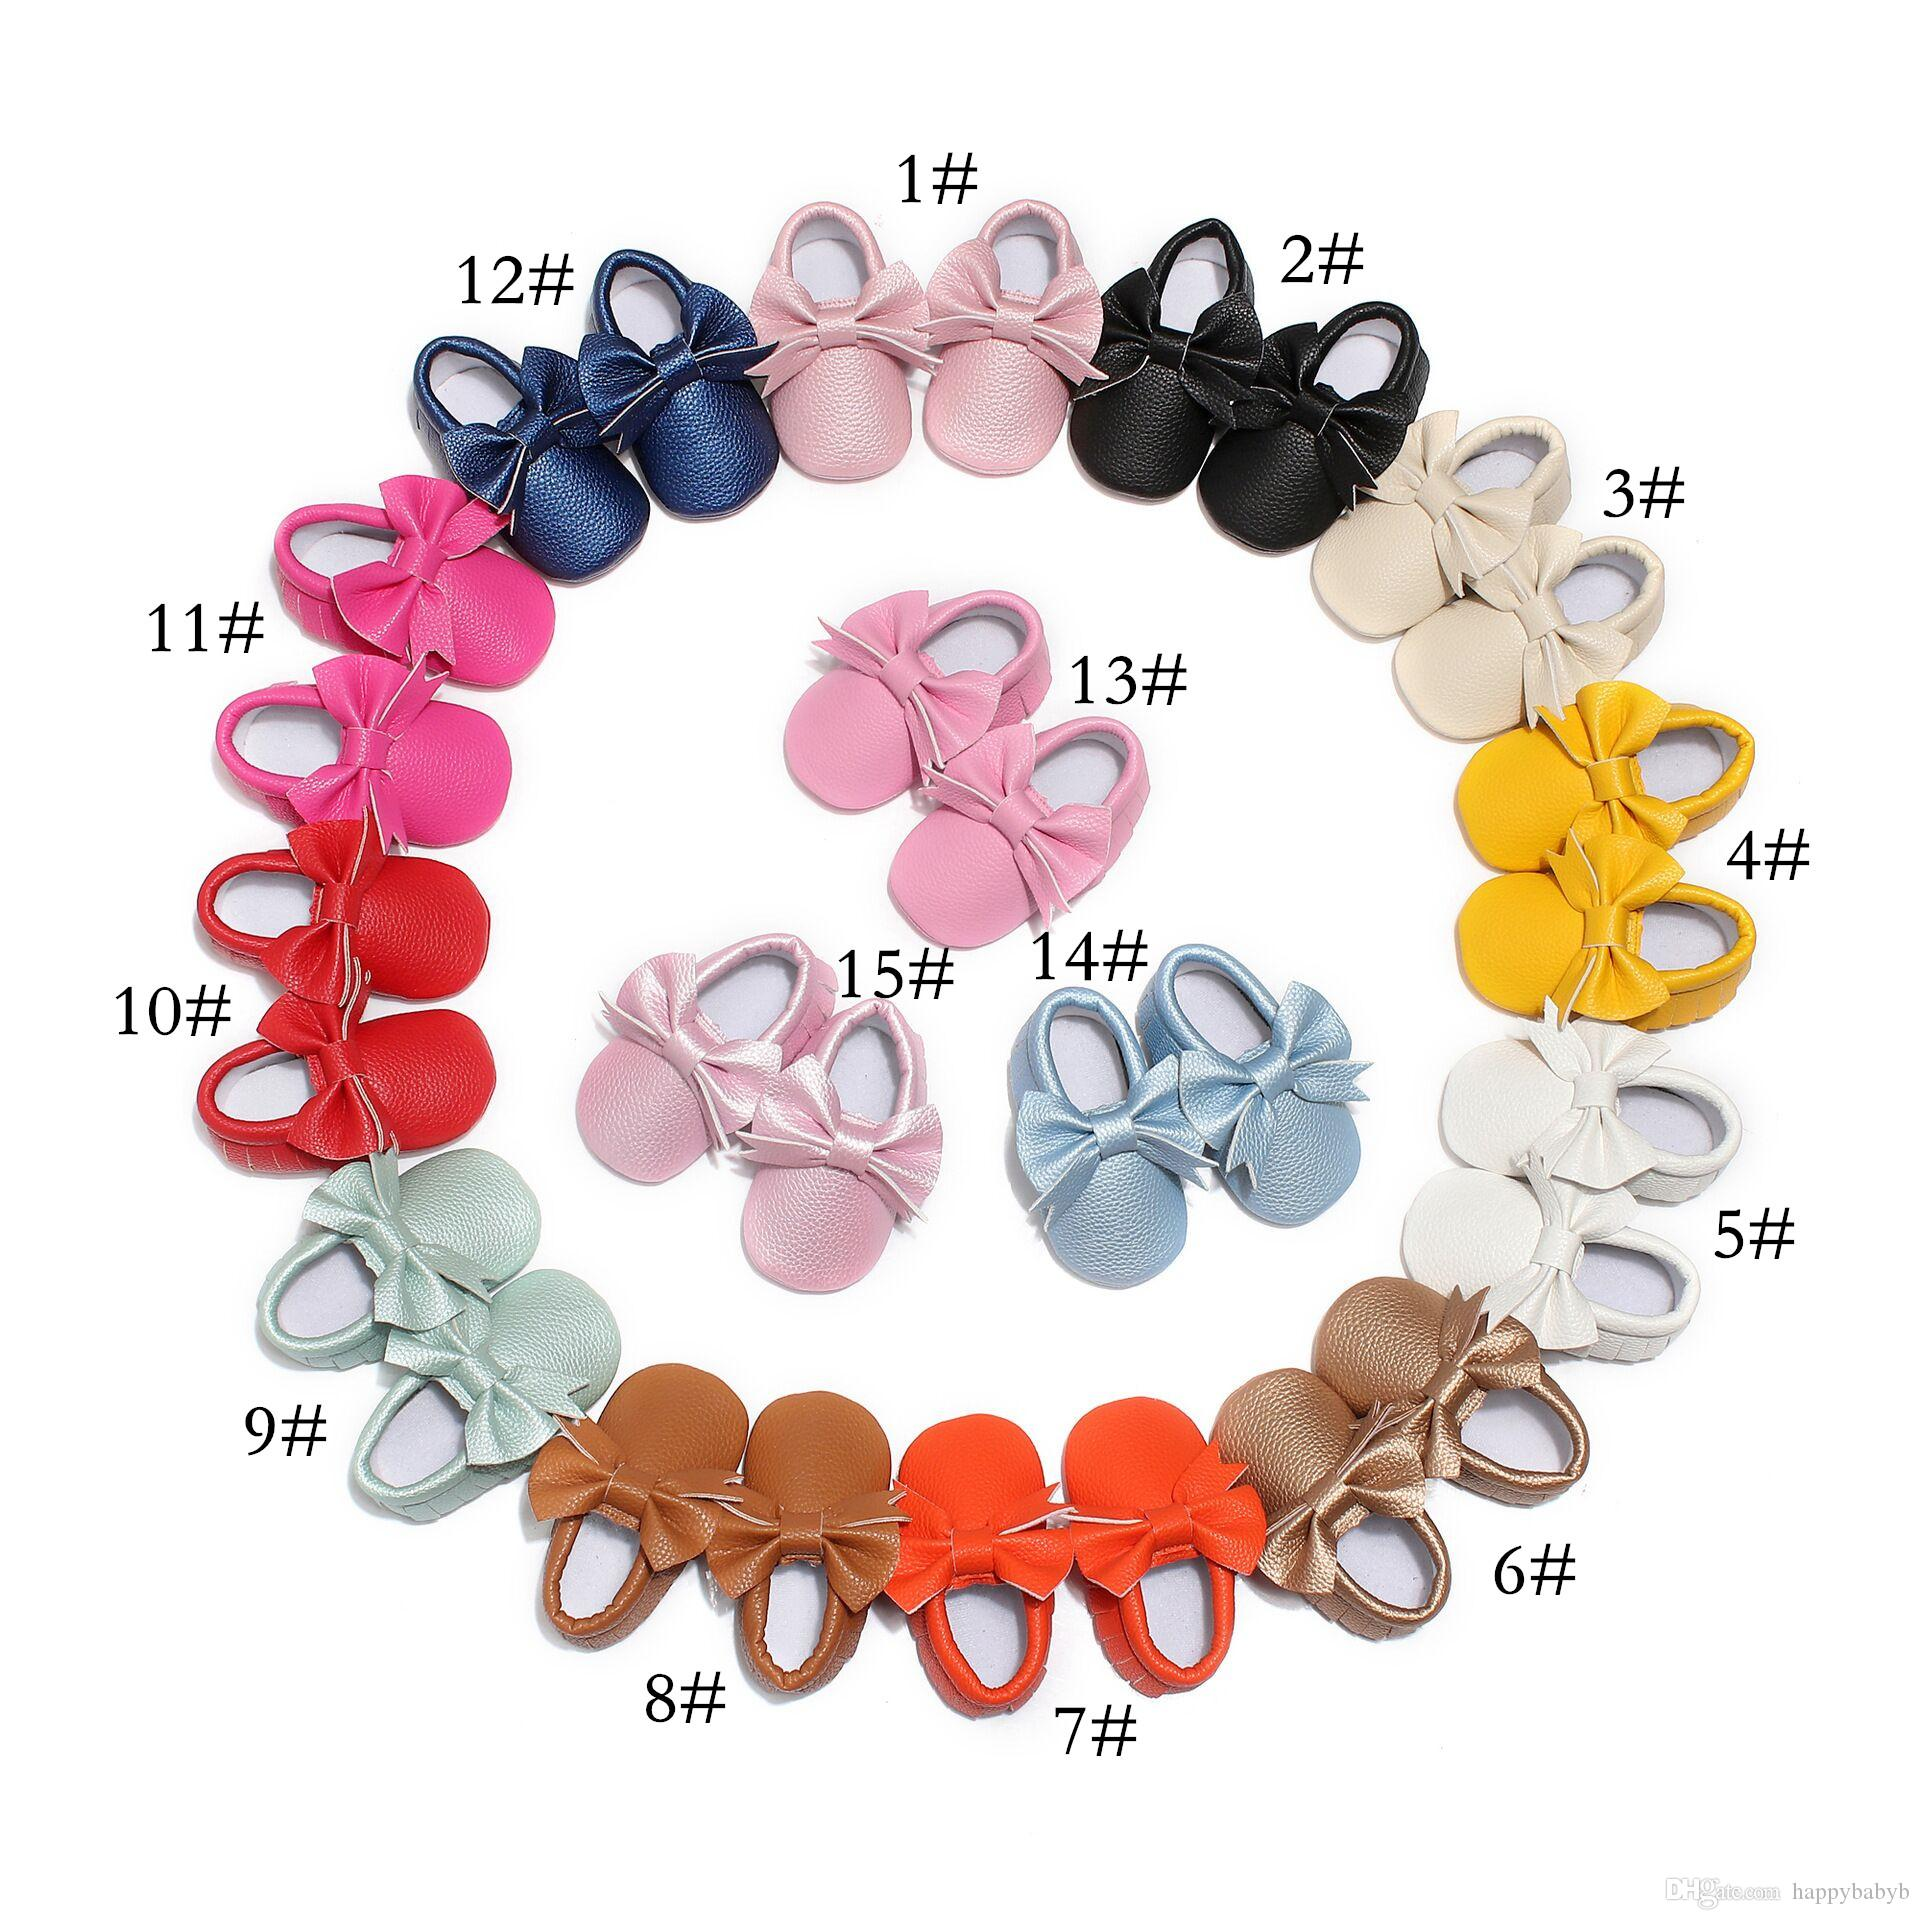 15 Colors New Tassel Baby First Walker Shoes moccs Baby moccasins soft sole PU leather Colorful Bow booties toddlers shoes